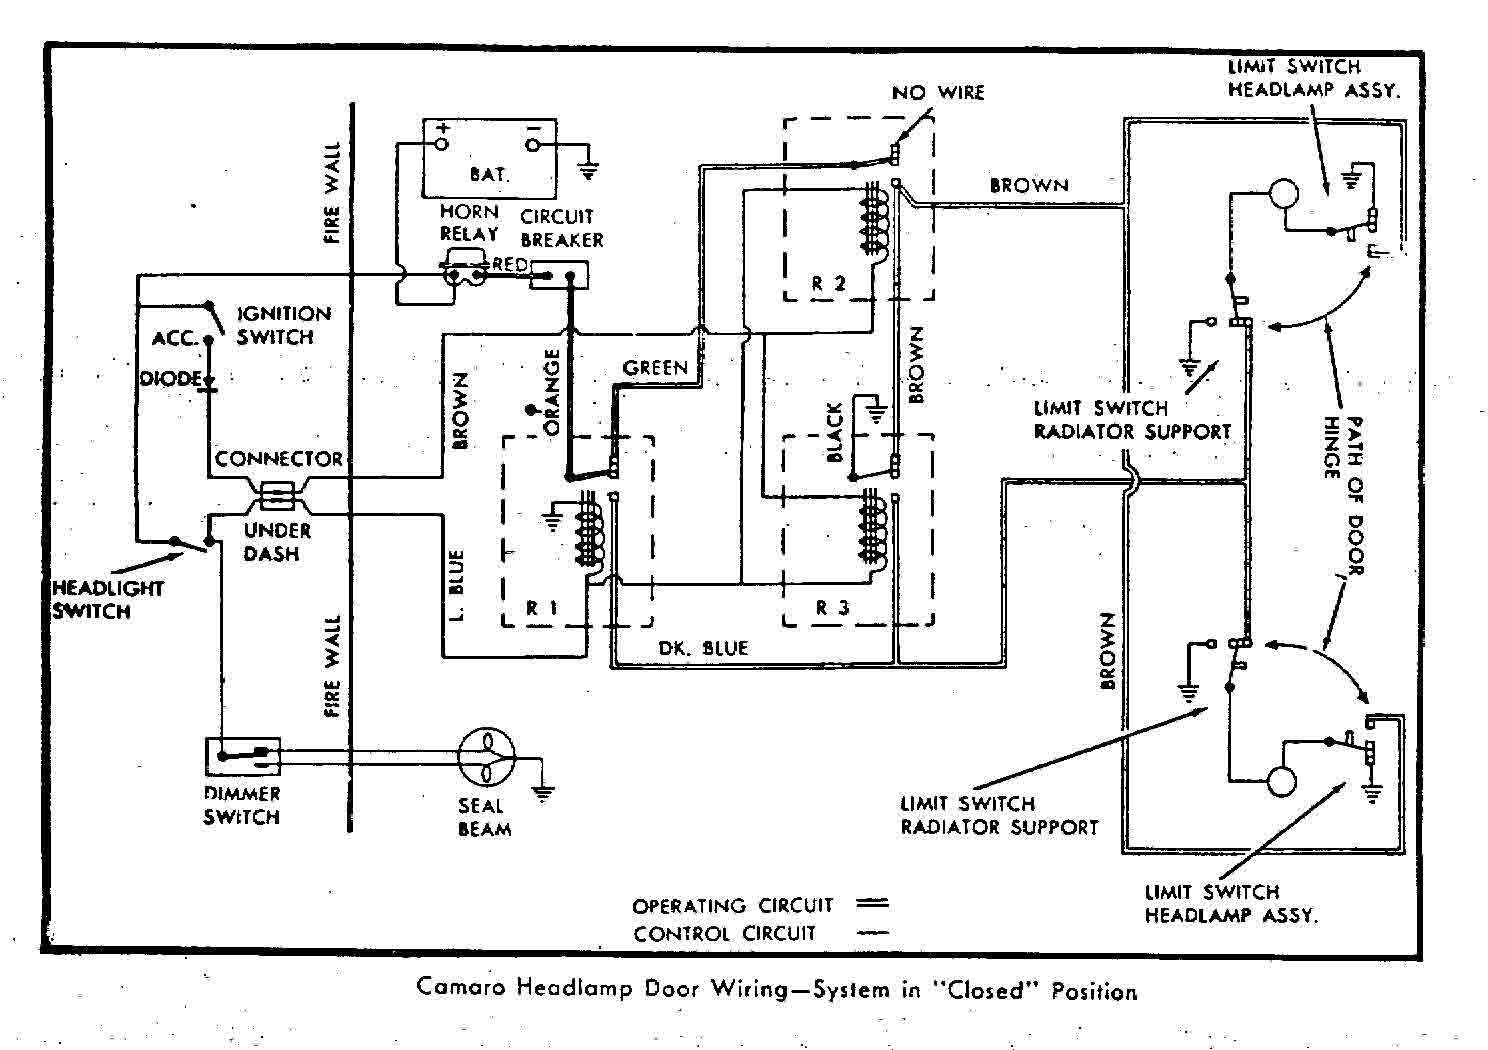 67rswire2 2010 camaro console wiring diagram detailed schematics diagram